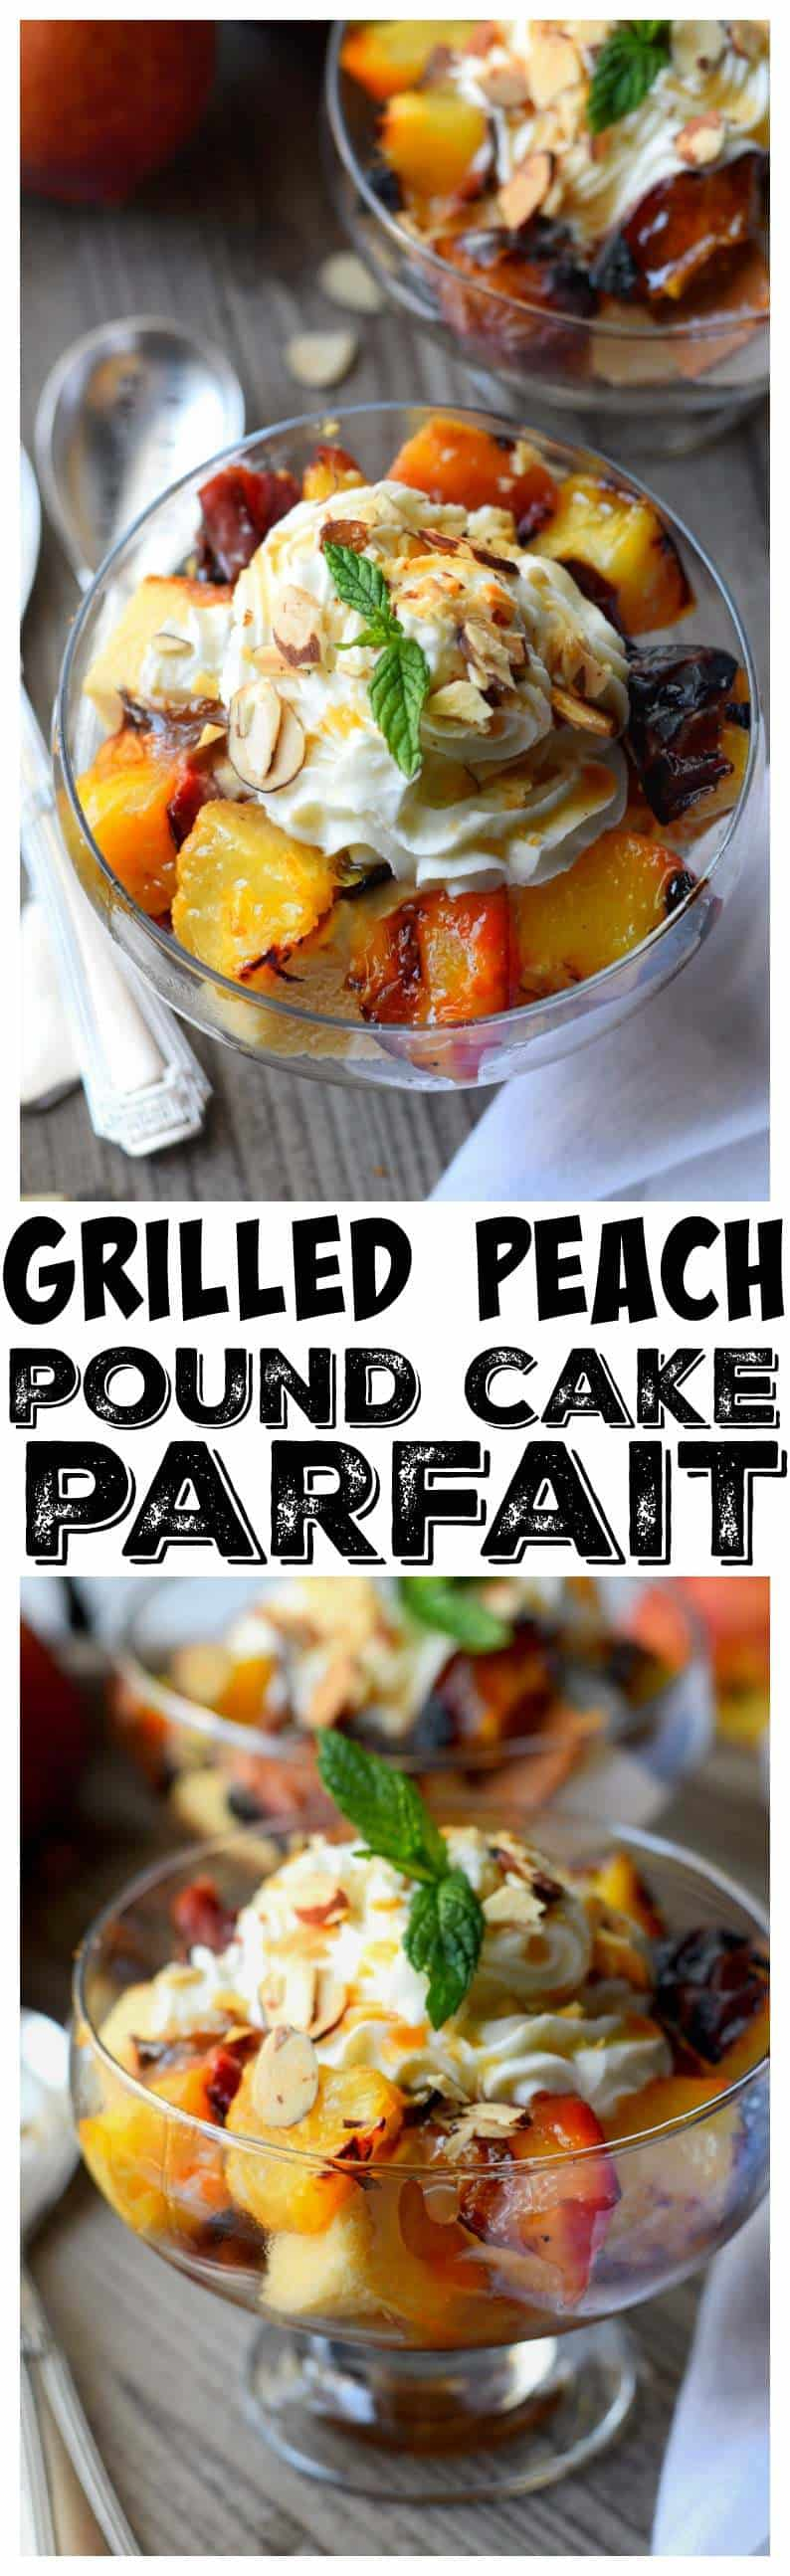 Grilled Peach and pound cake parfait